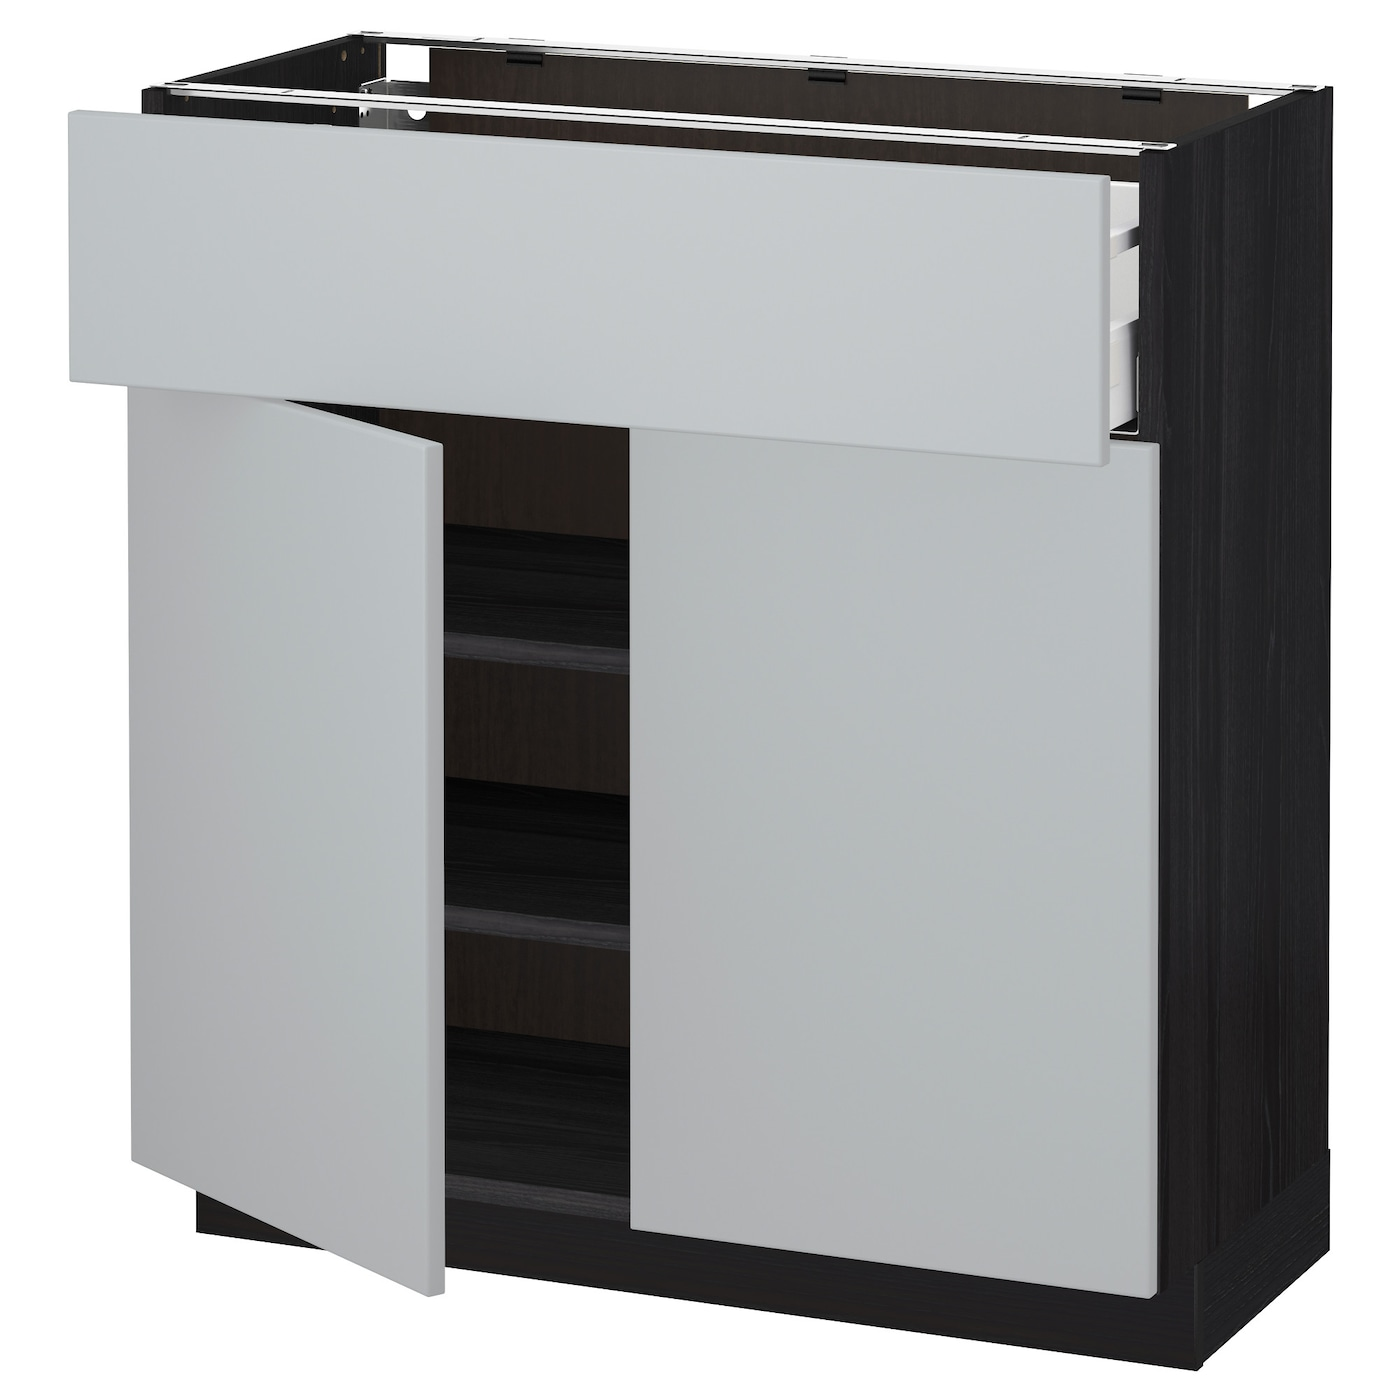 metod maximera base cabinet with drawer 2 doors black veddinge grey 80 x 37 cm ikea. Black Bedroom Furniture Sets. Home Design Ideas